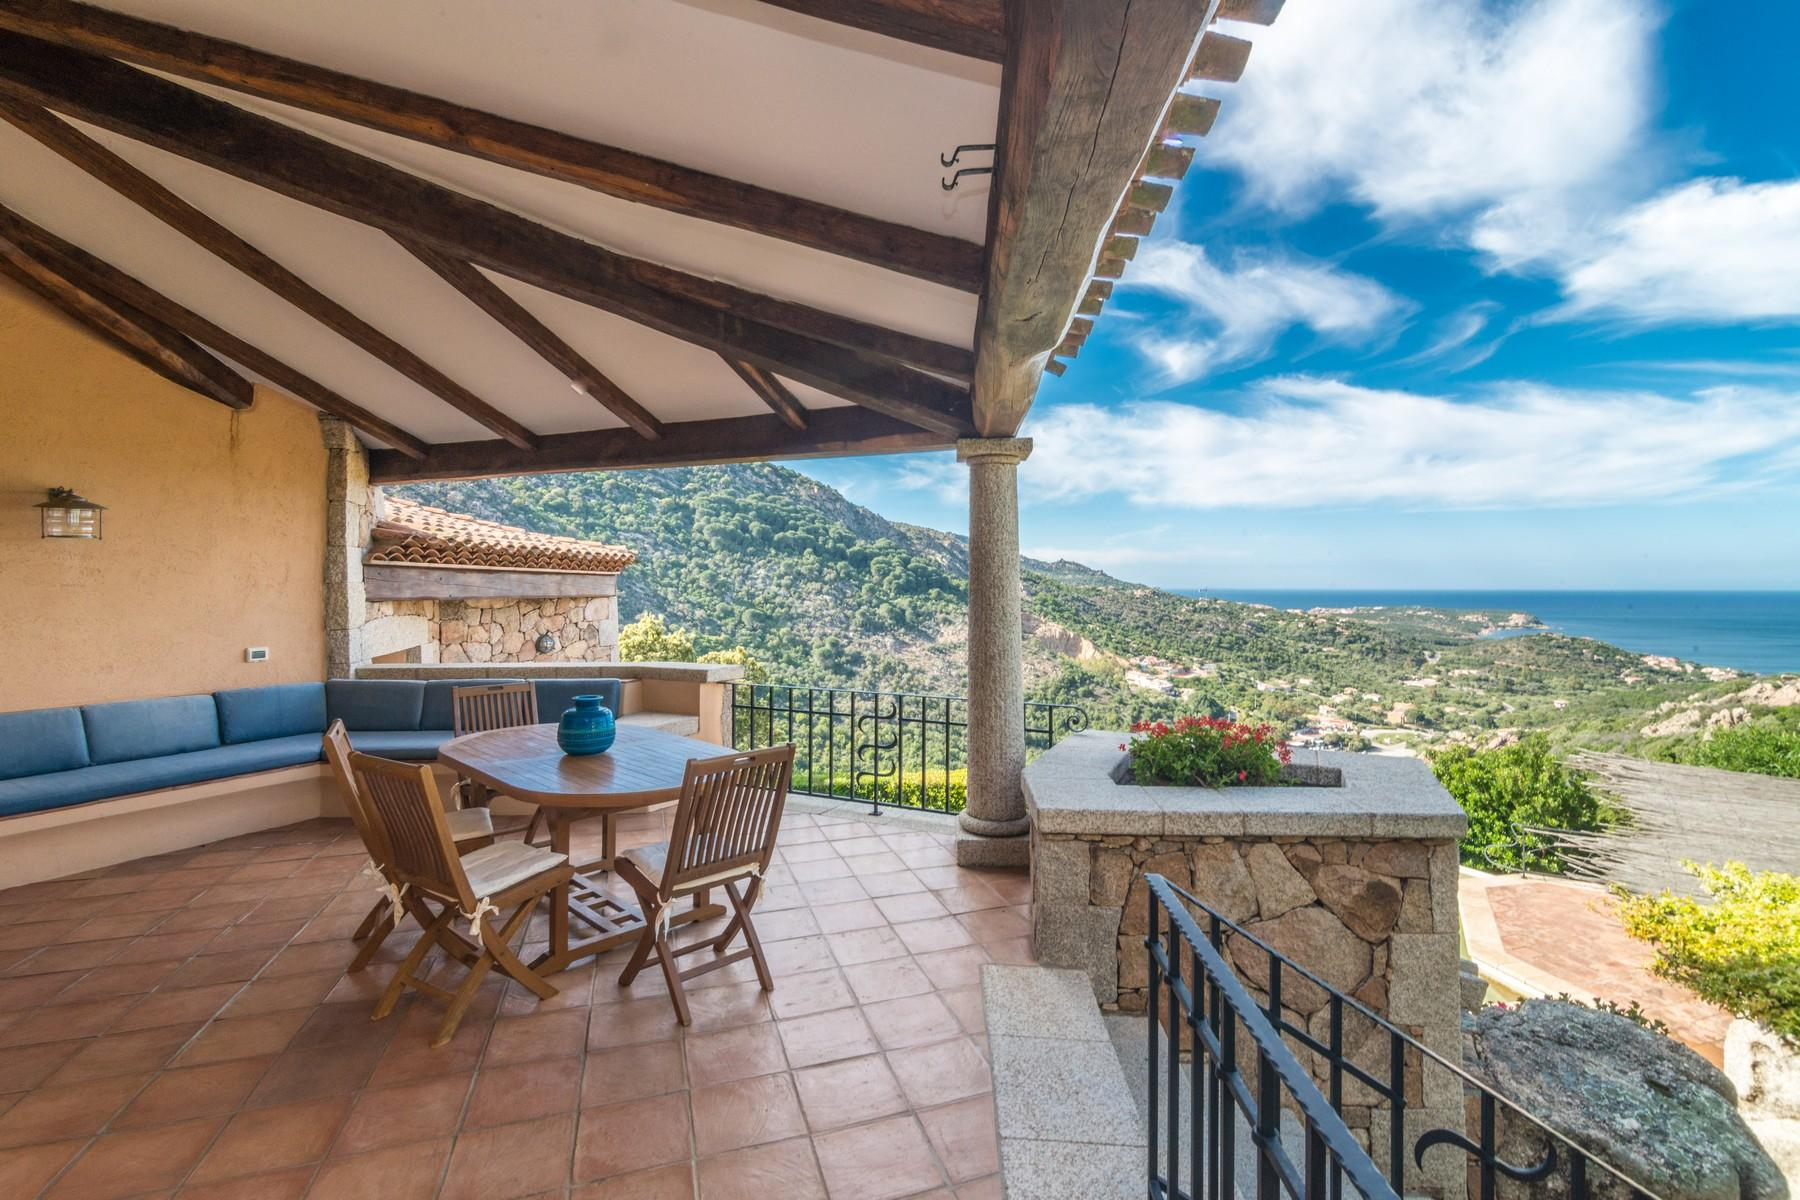 Porto Cervo Abbiadori Beautiful semi-detached villa with sea view - 8